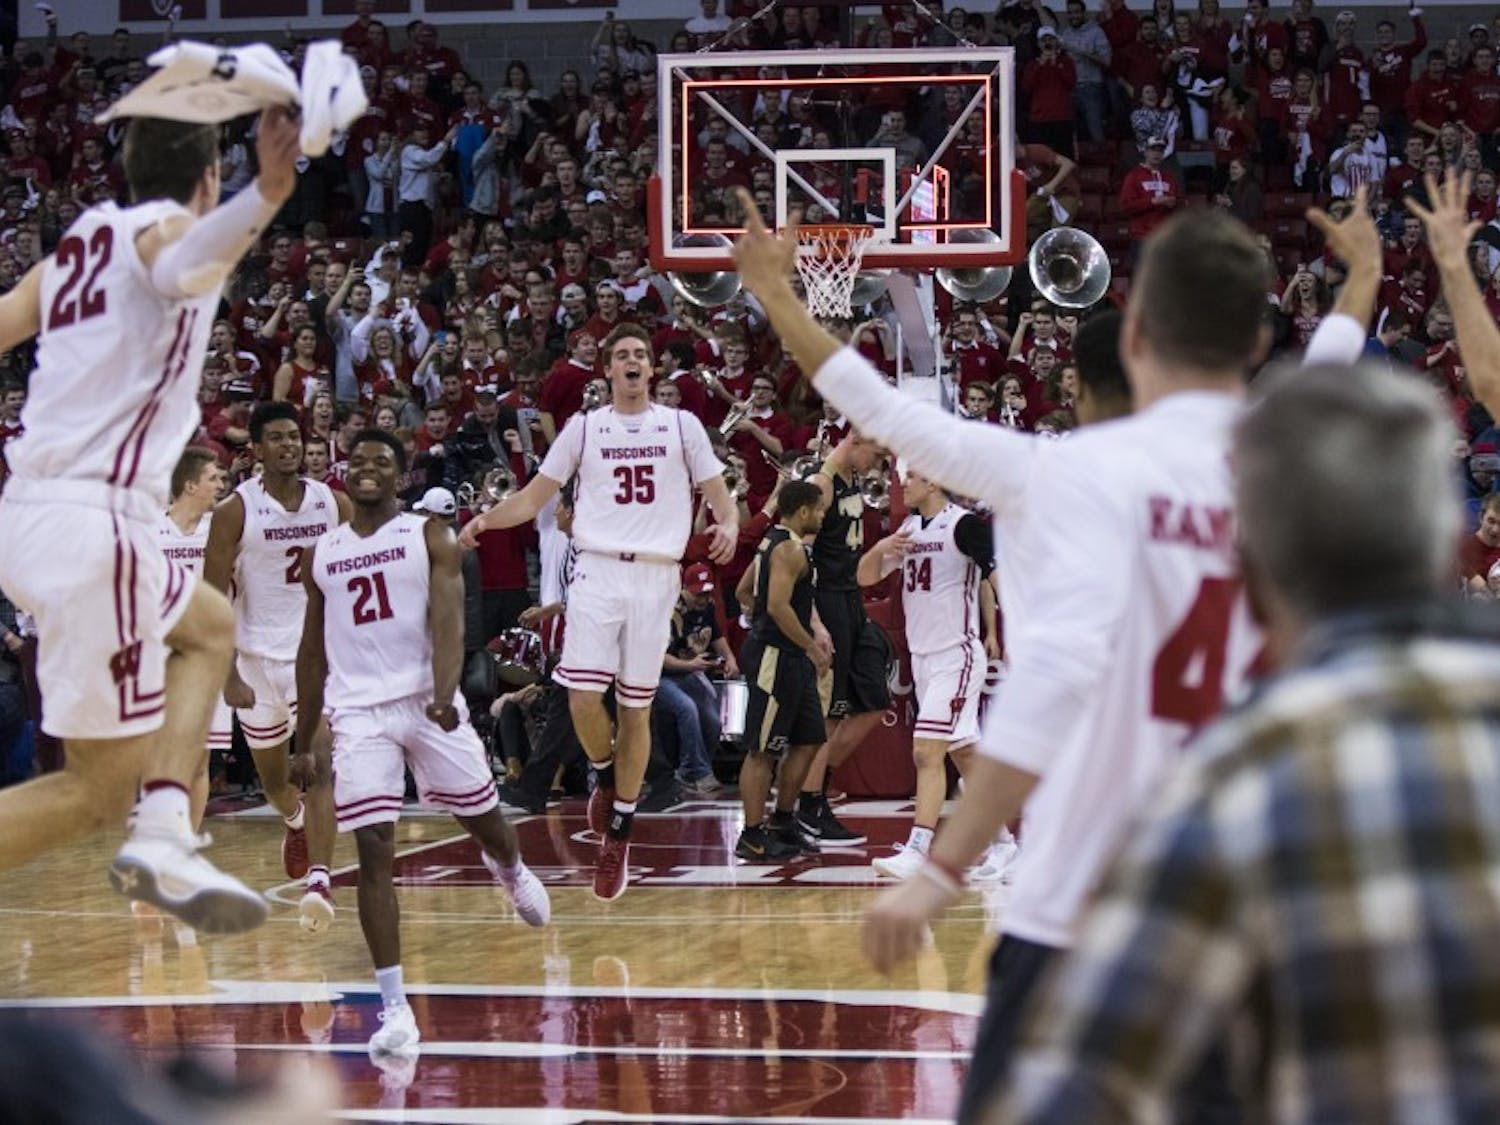 With numerous former players in attendance for the retirement of Frank Kaminsky's number 44,Wisconsin's men's basketball team upset No. 6 Purdue 57-53in a game that came down to the wire.